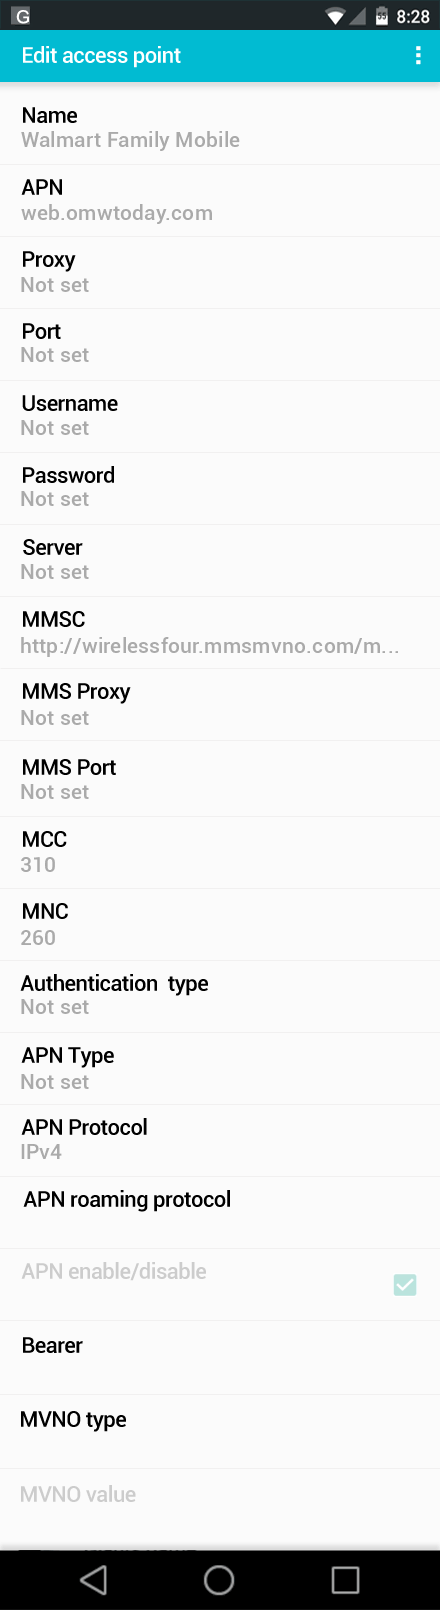 Walmart Family Mobile  APN settings for Android screenshot